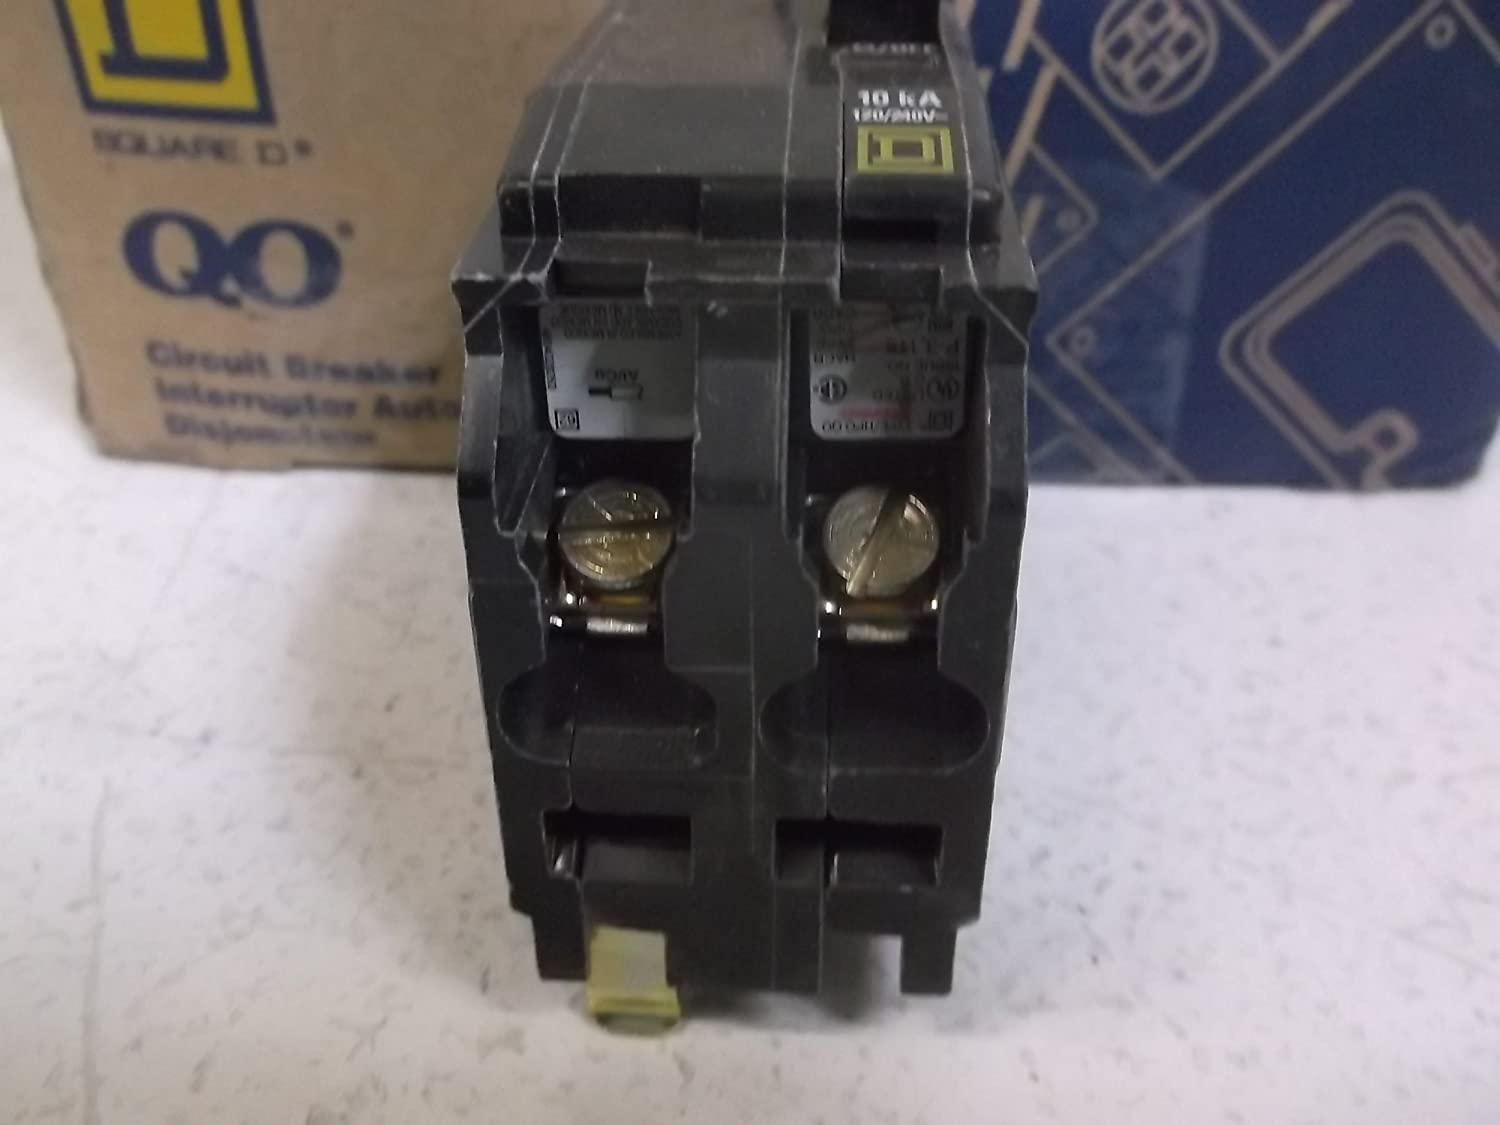 Square D Qo230 2 Pole 30amp 120 240v Circuit Breaker By Two 30 Amp Hom230cp Schneider Electric Industrial Scientific